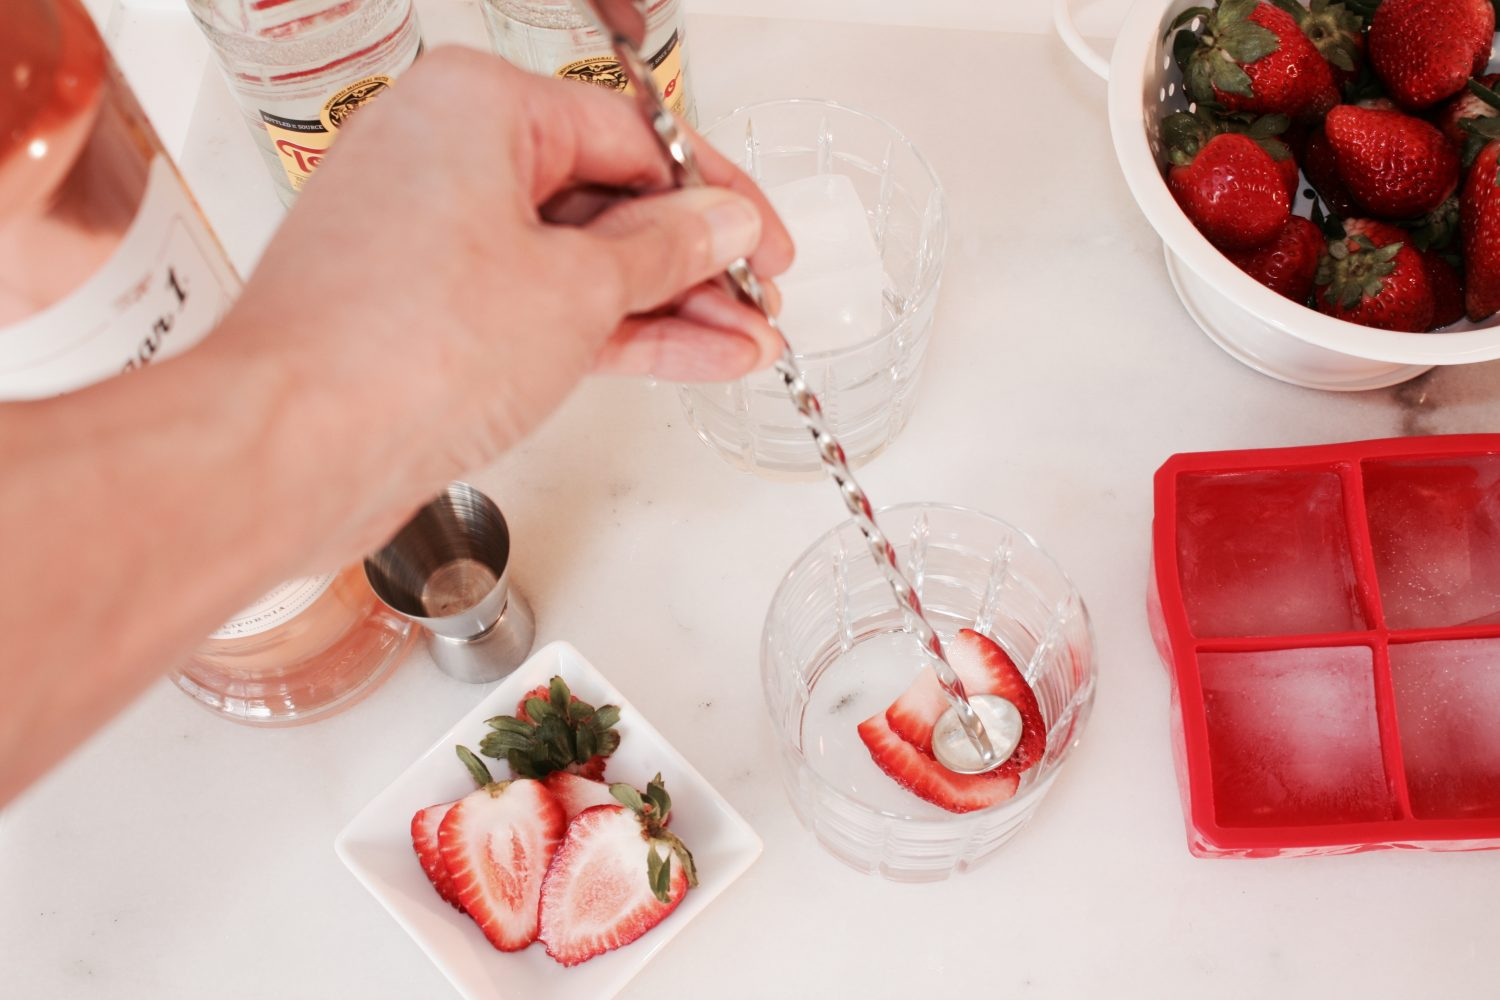 muddled strawberry for drink